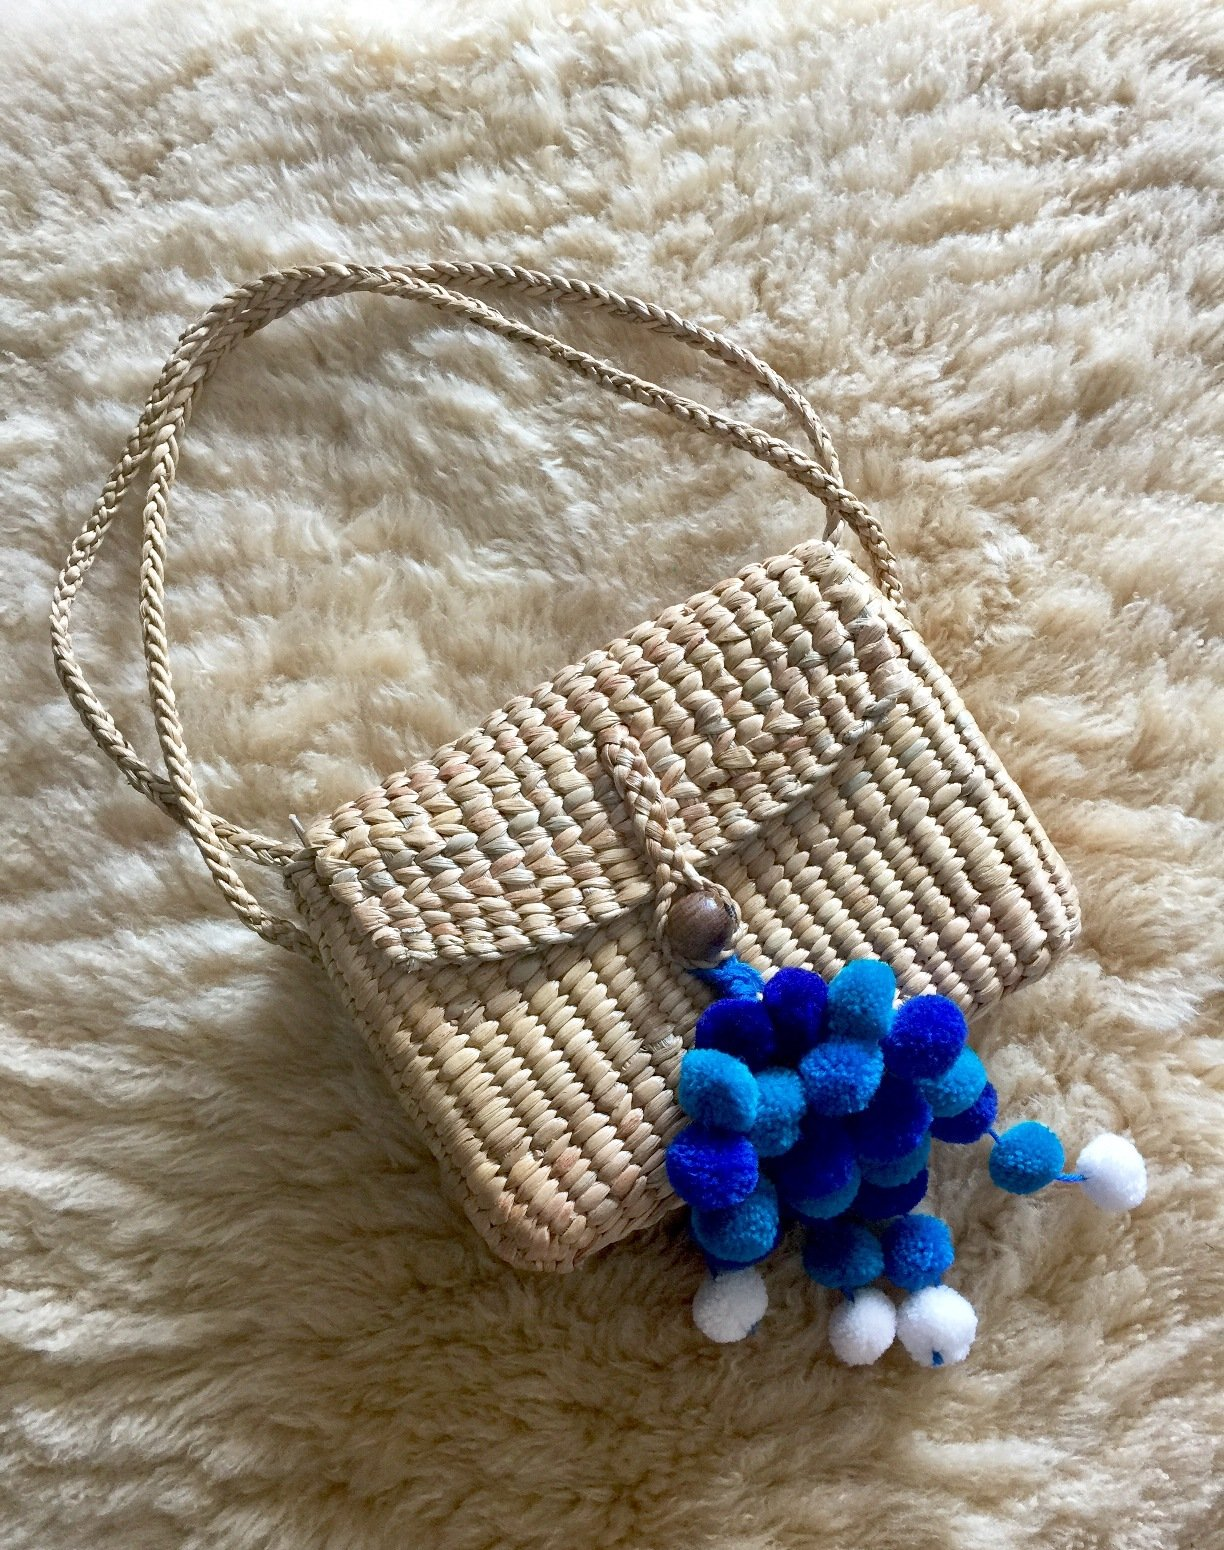 Pom Pom Crossbody Bag,Straw Shoulder Bag,Straw Crossbody Bag,Summer Straw Tote,Crossbody Straw Tote,Cutest Pom Pom Straw Bag,Straw Basket Purse